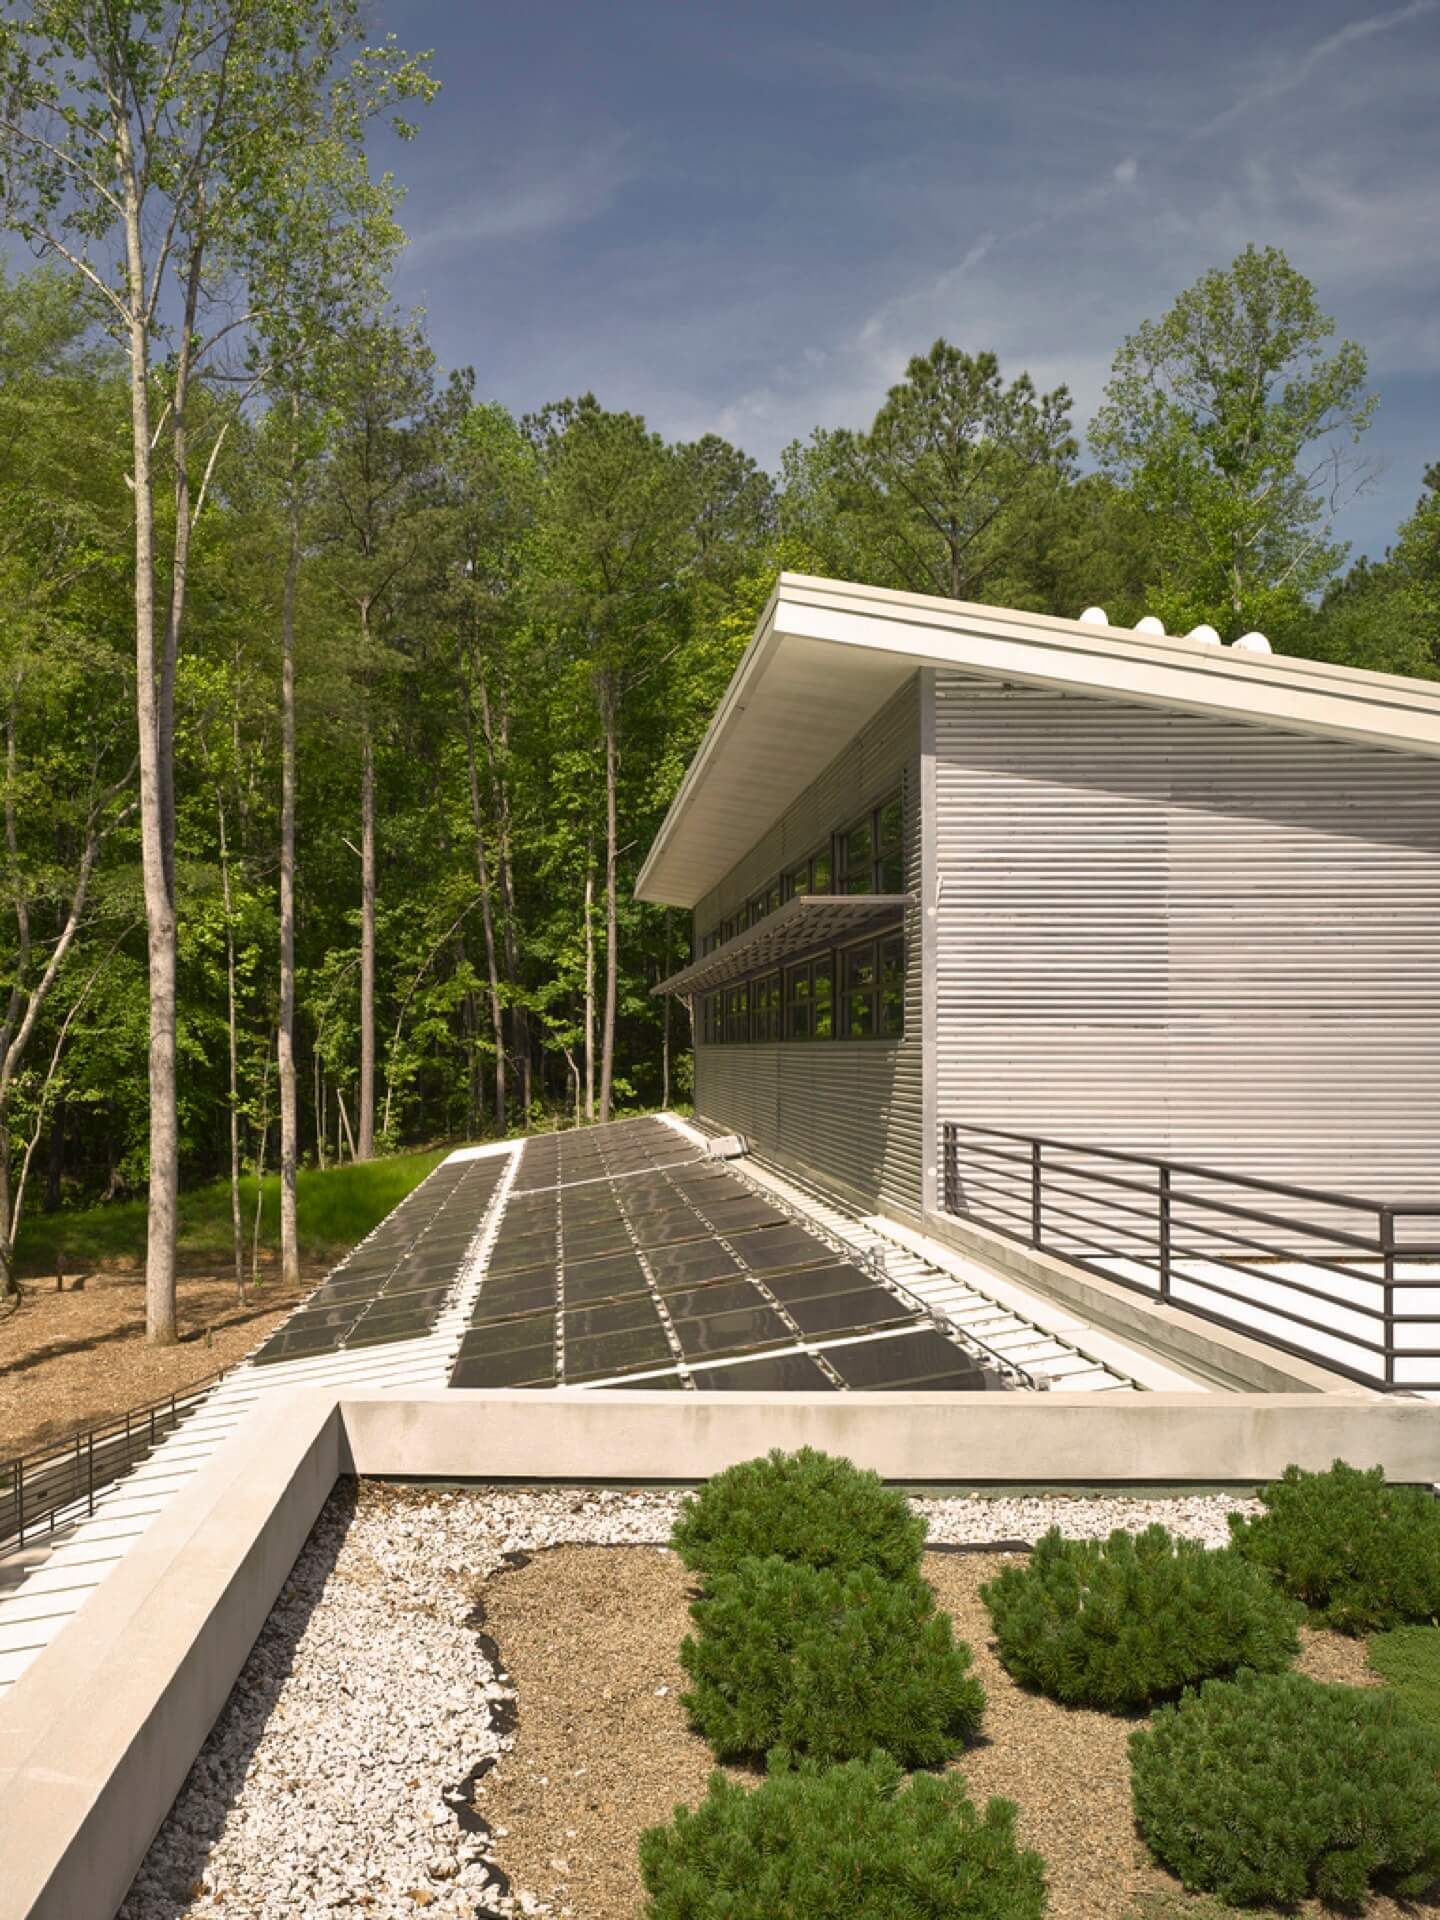 Sweetwater Creek Visitor Center